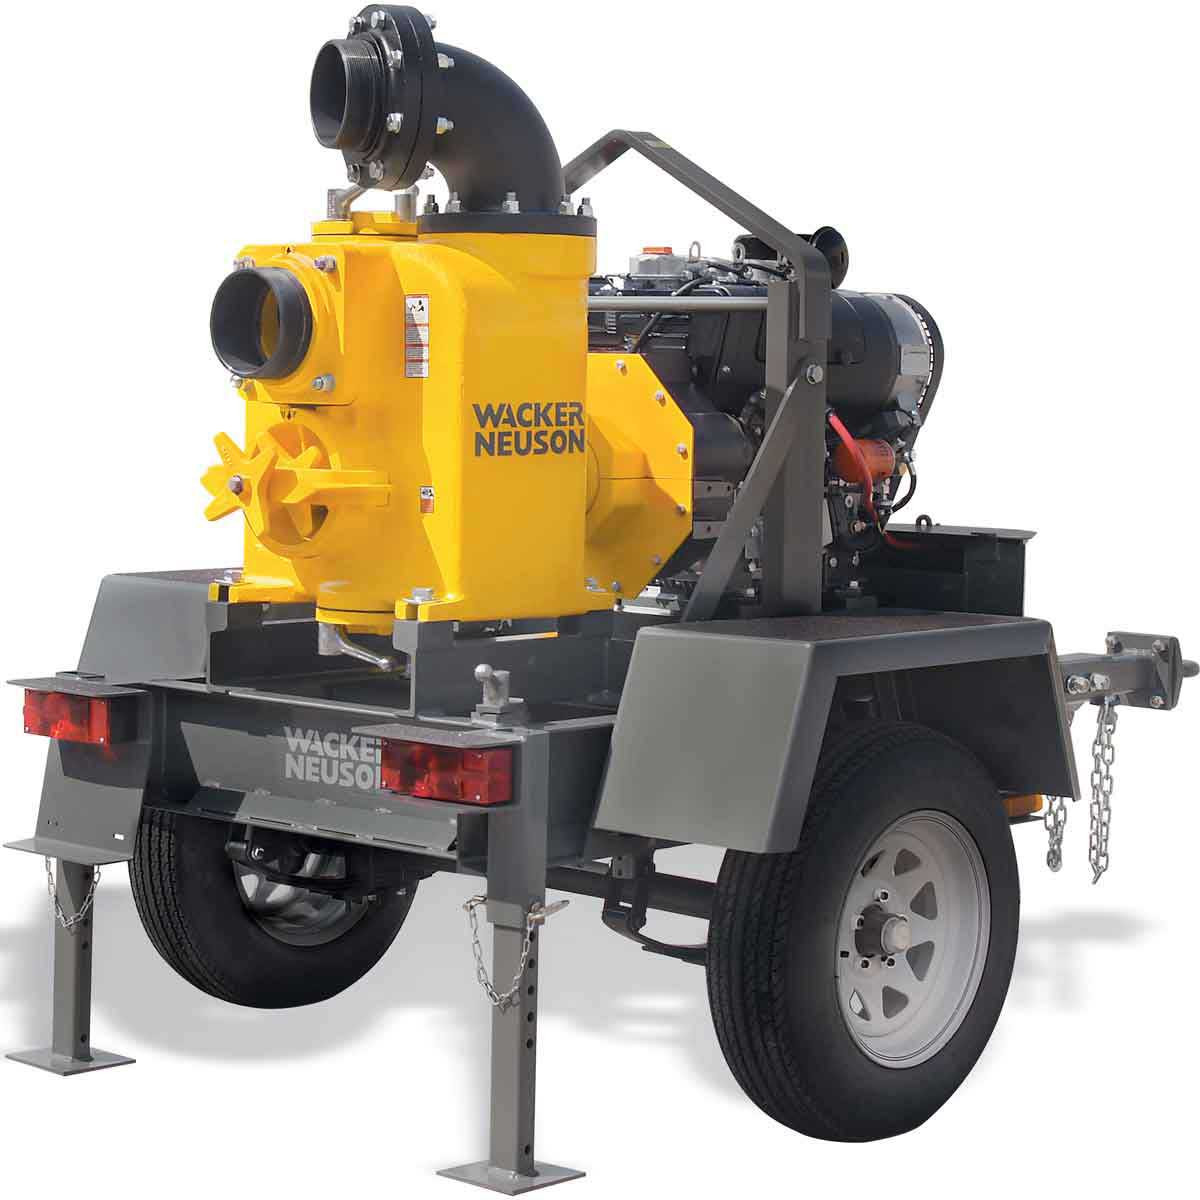 6 inch Trash Pump Wacker Neuson